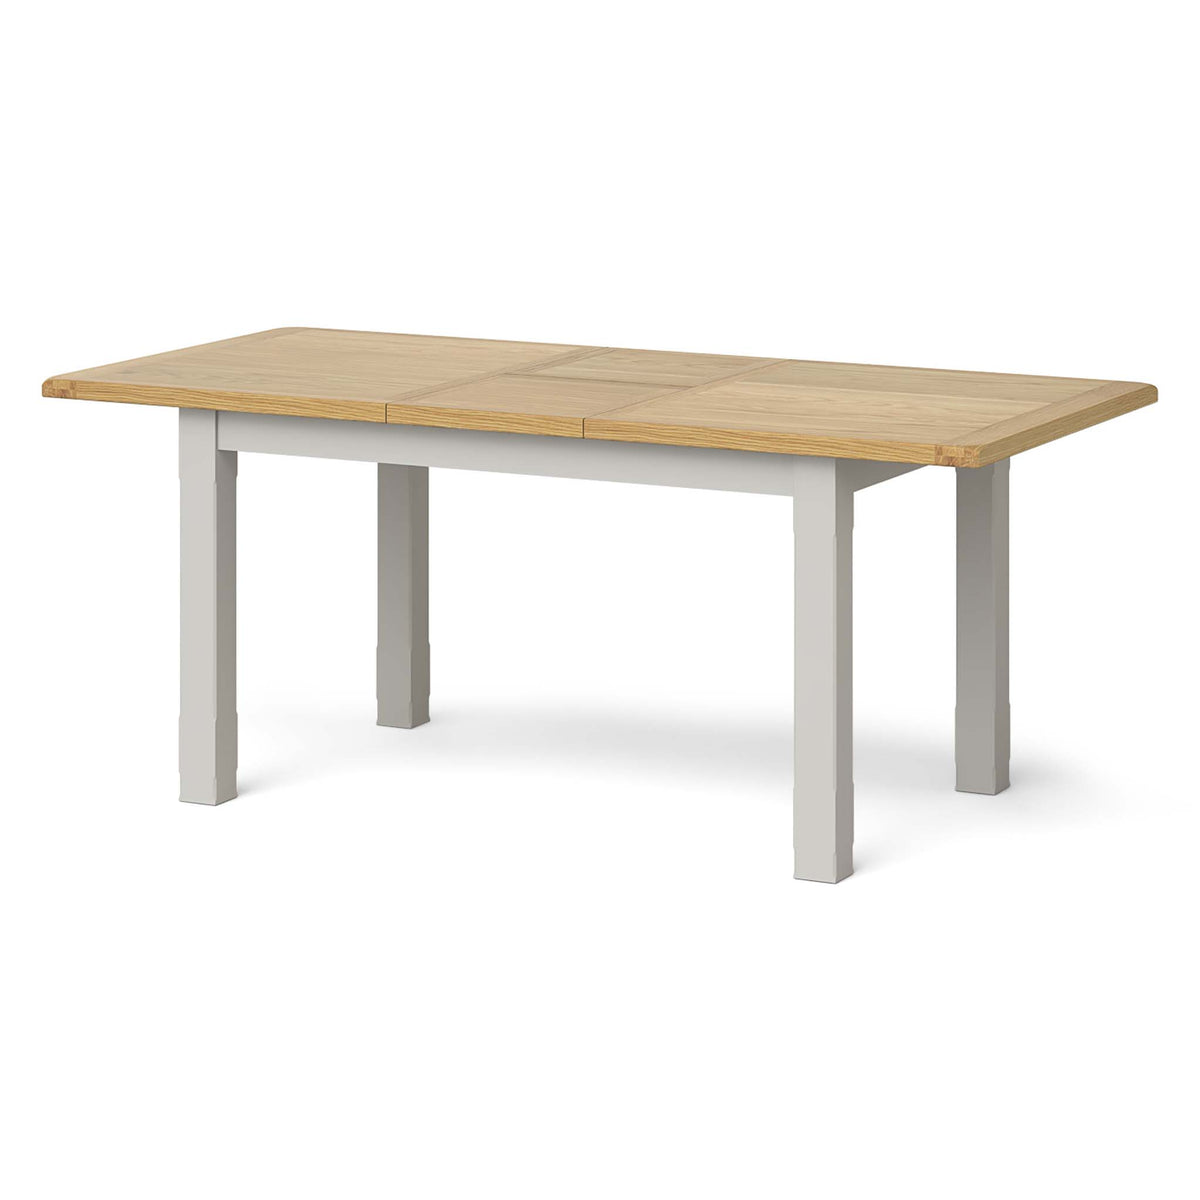 Lundy Grey Small Extending Oak Topped Dining Table - Fully Extended